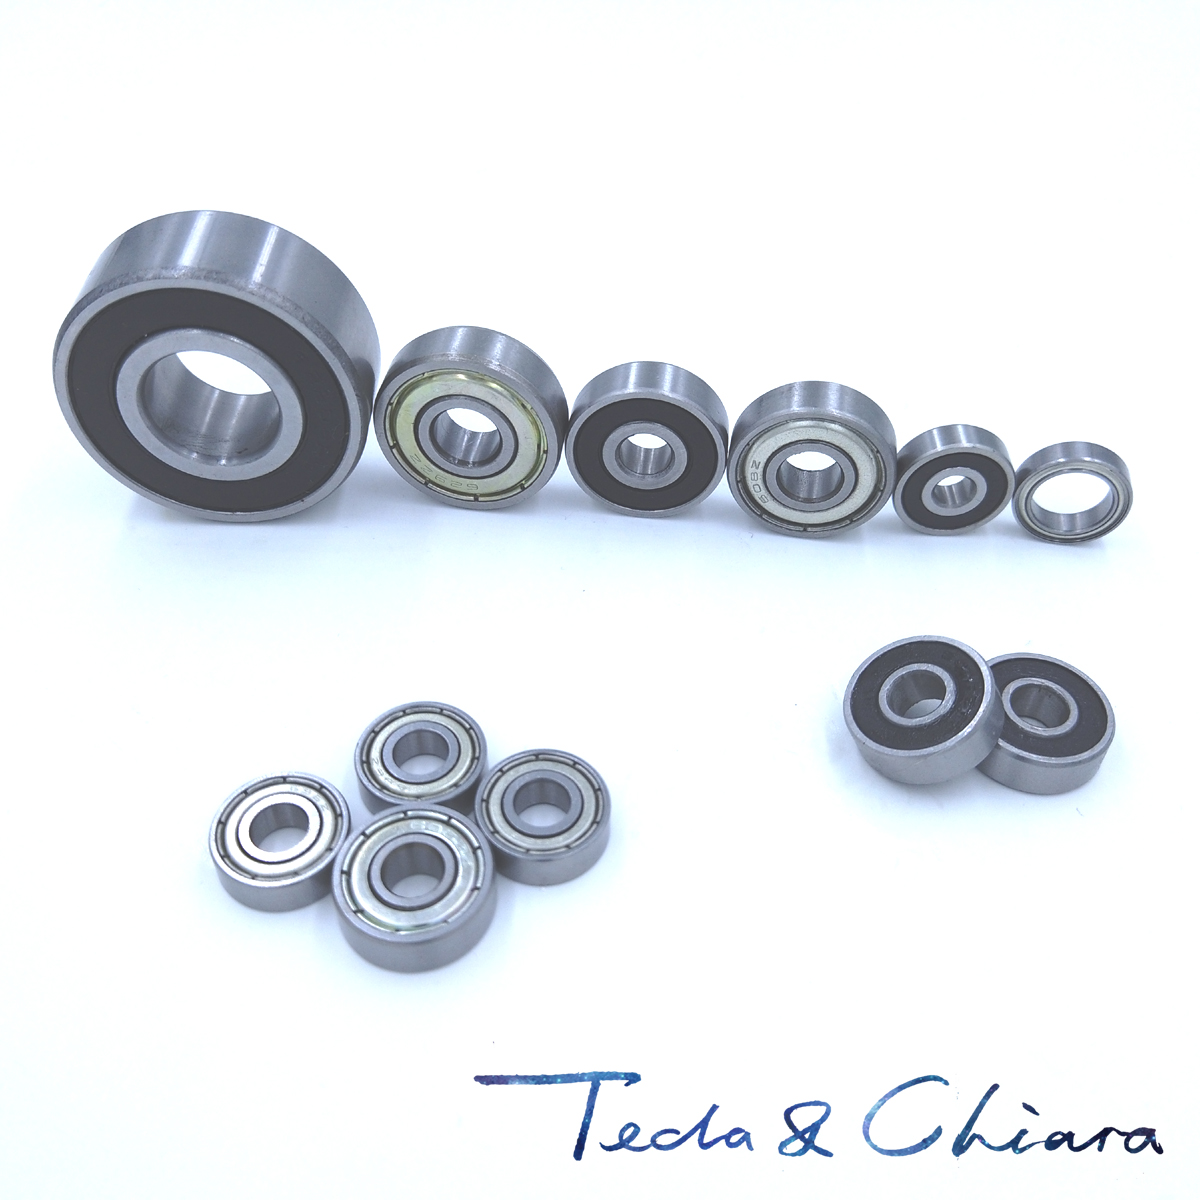 BEARING OPTIONS MINIATURE BEARING 625 2RS STAINLESS STEEL 5MM X 16MM X 5MM